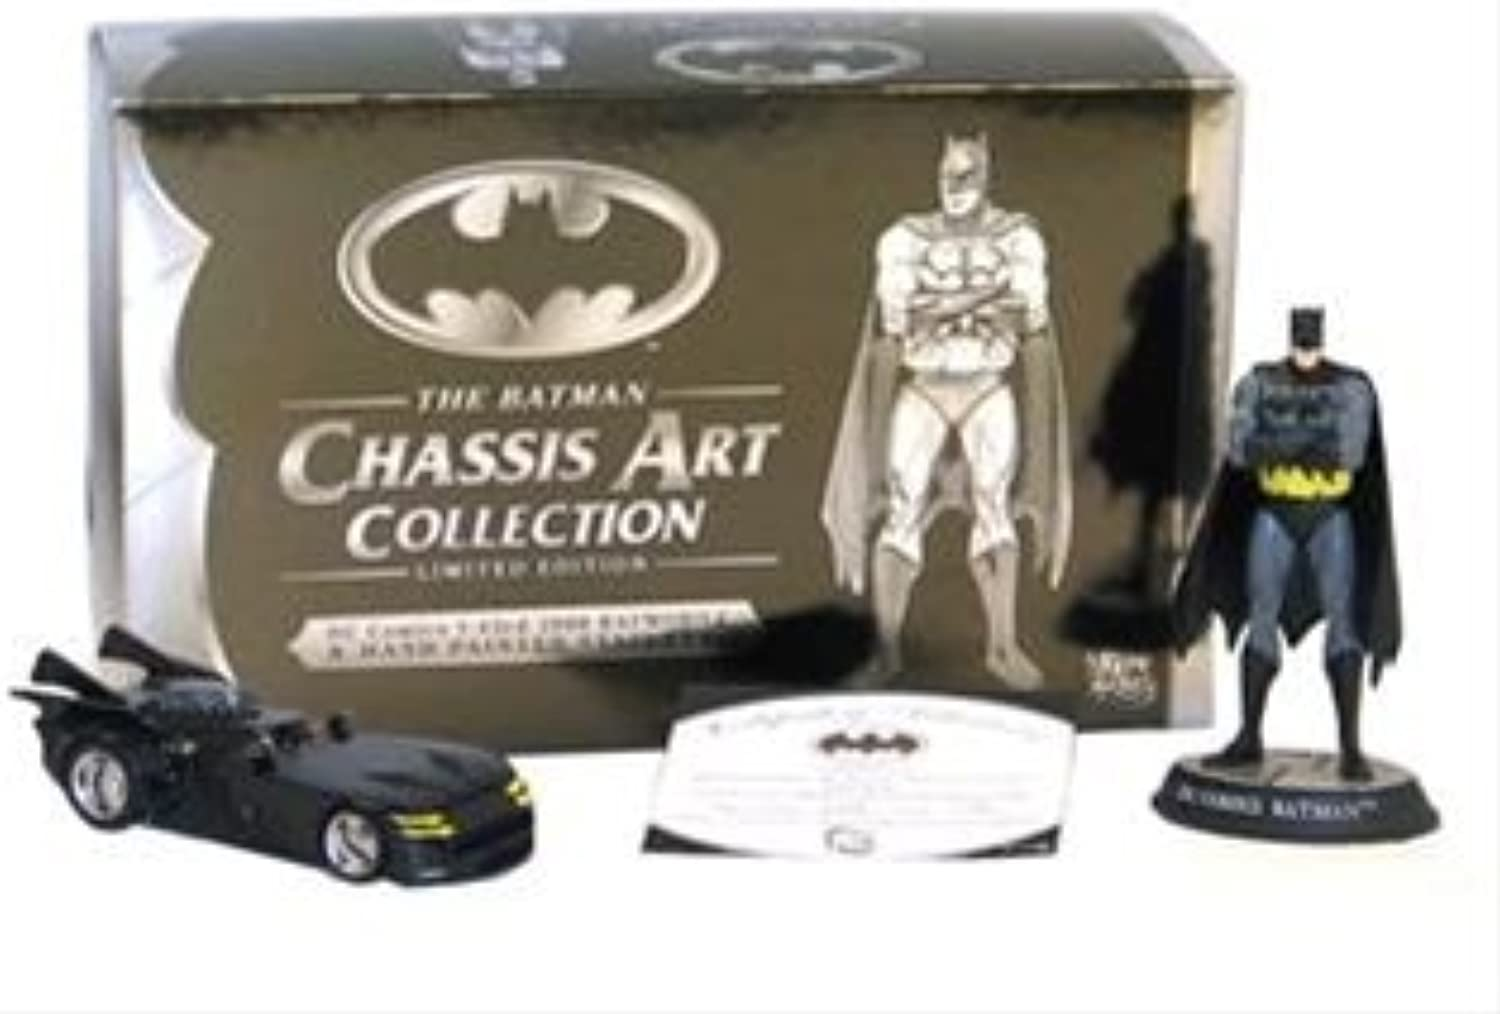 The Batman Limited Edition Chassis Art Collection - 2000 Batmobile & Batman Statuette